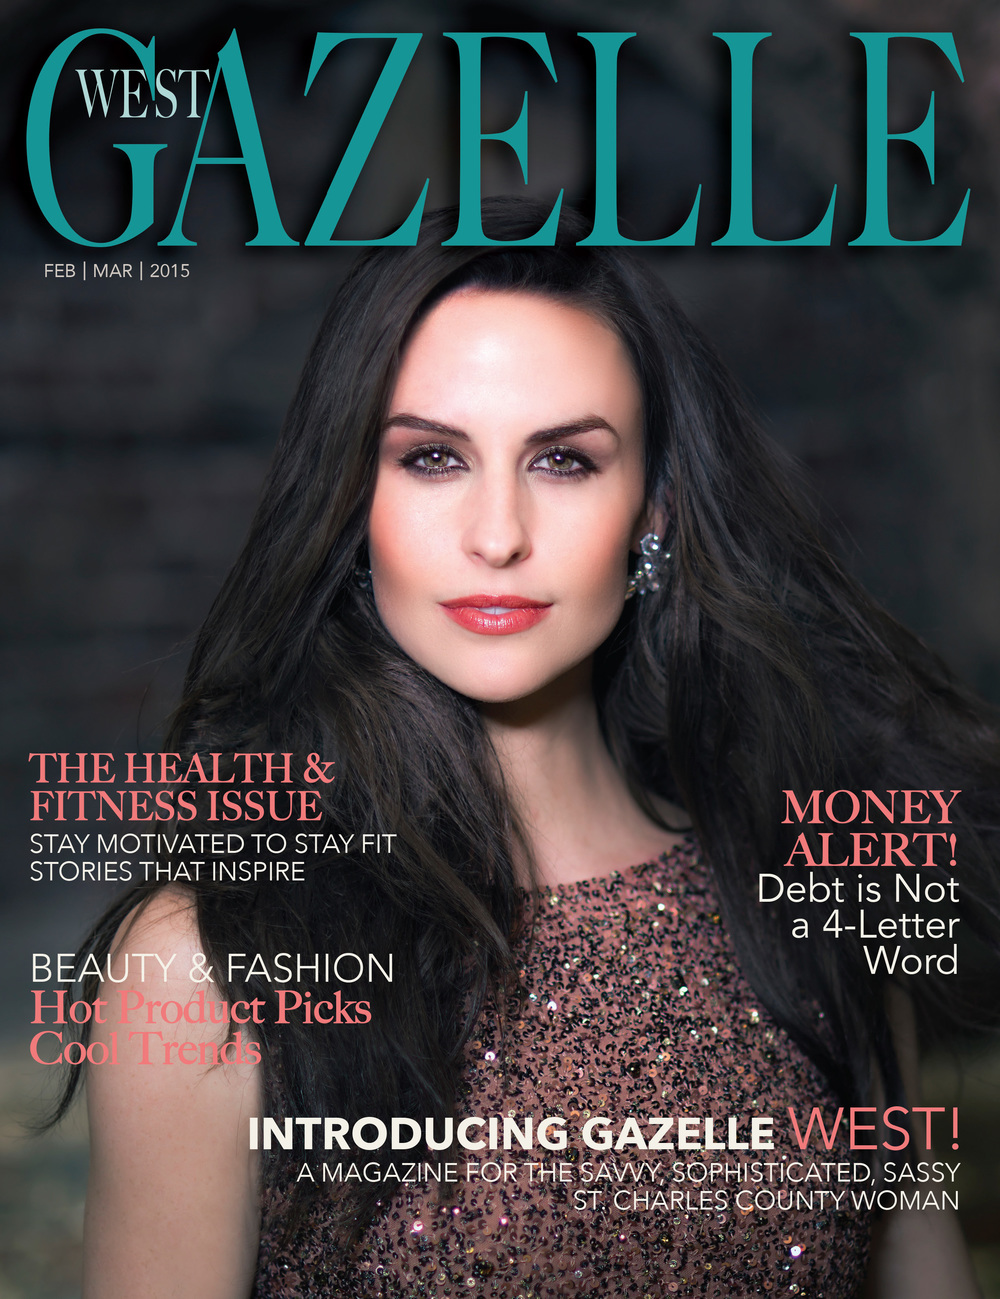 PHOTO-17_Gazelle-West-STL-Cover.jpg